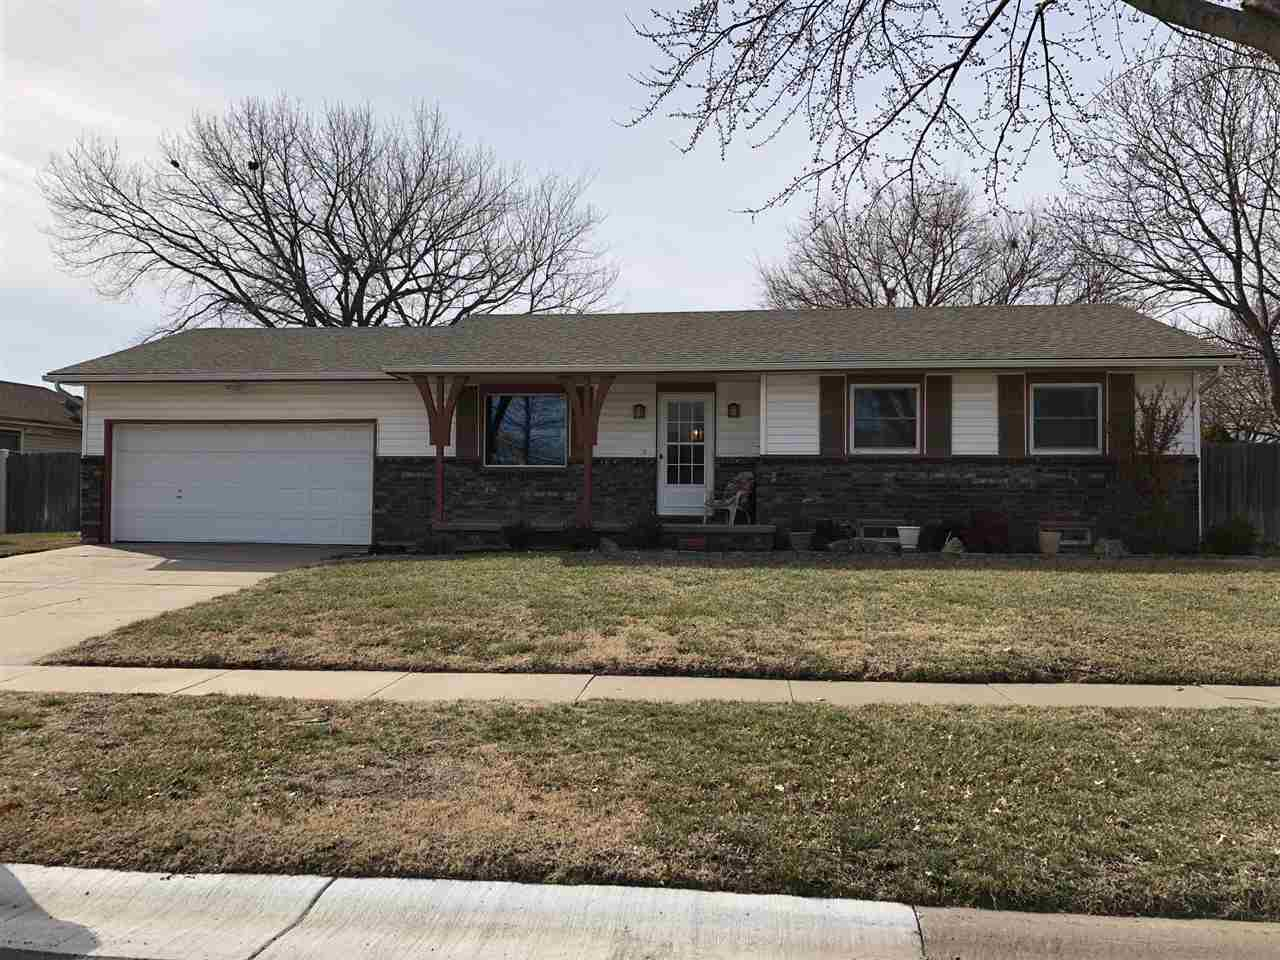 Well maintained 1978 ranch home in Bel Aire, with 3 Bedrooms & 2 bathrooms on the main floor. The ho